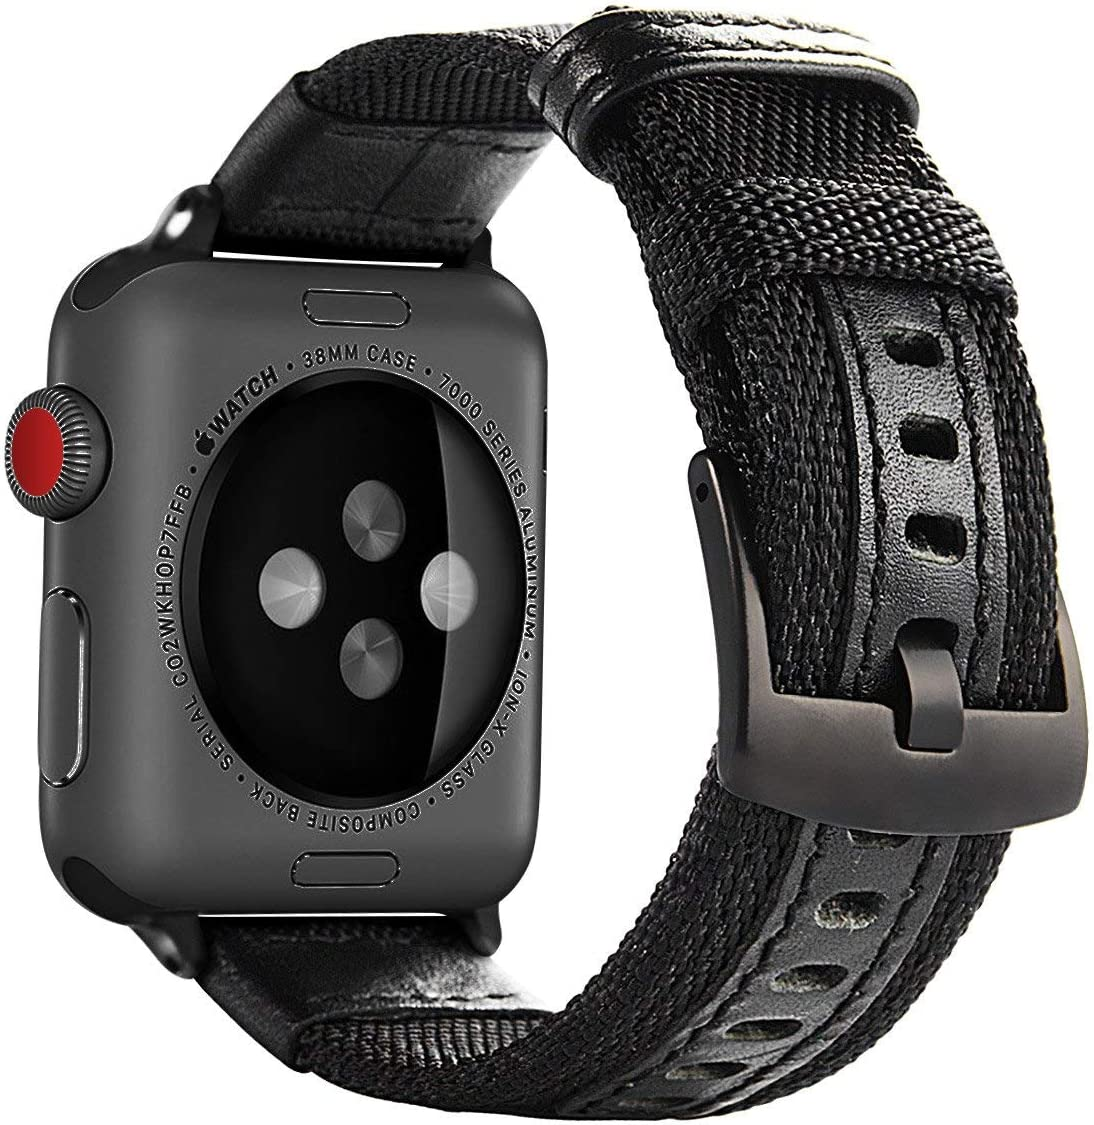 Maxjoy Compatible with Apple Watch Band, 42mm 44mm Nylon Strap Replacement Bands with Metal Clasp Compatible with Apple iWatch Series SE 6 5 4 3 2 1 Sport & Edition, Black